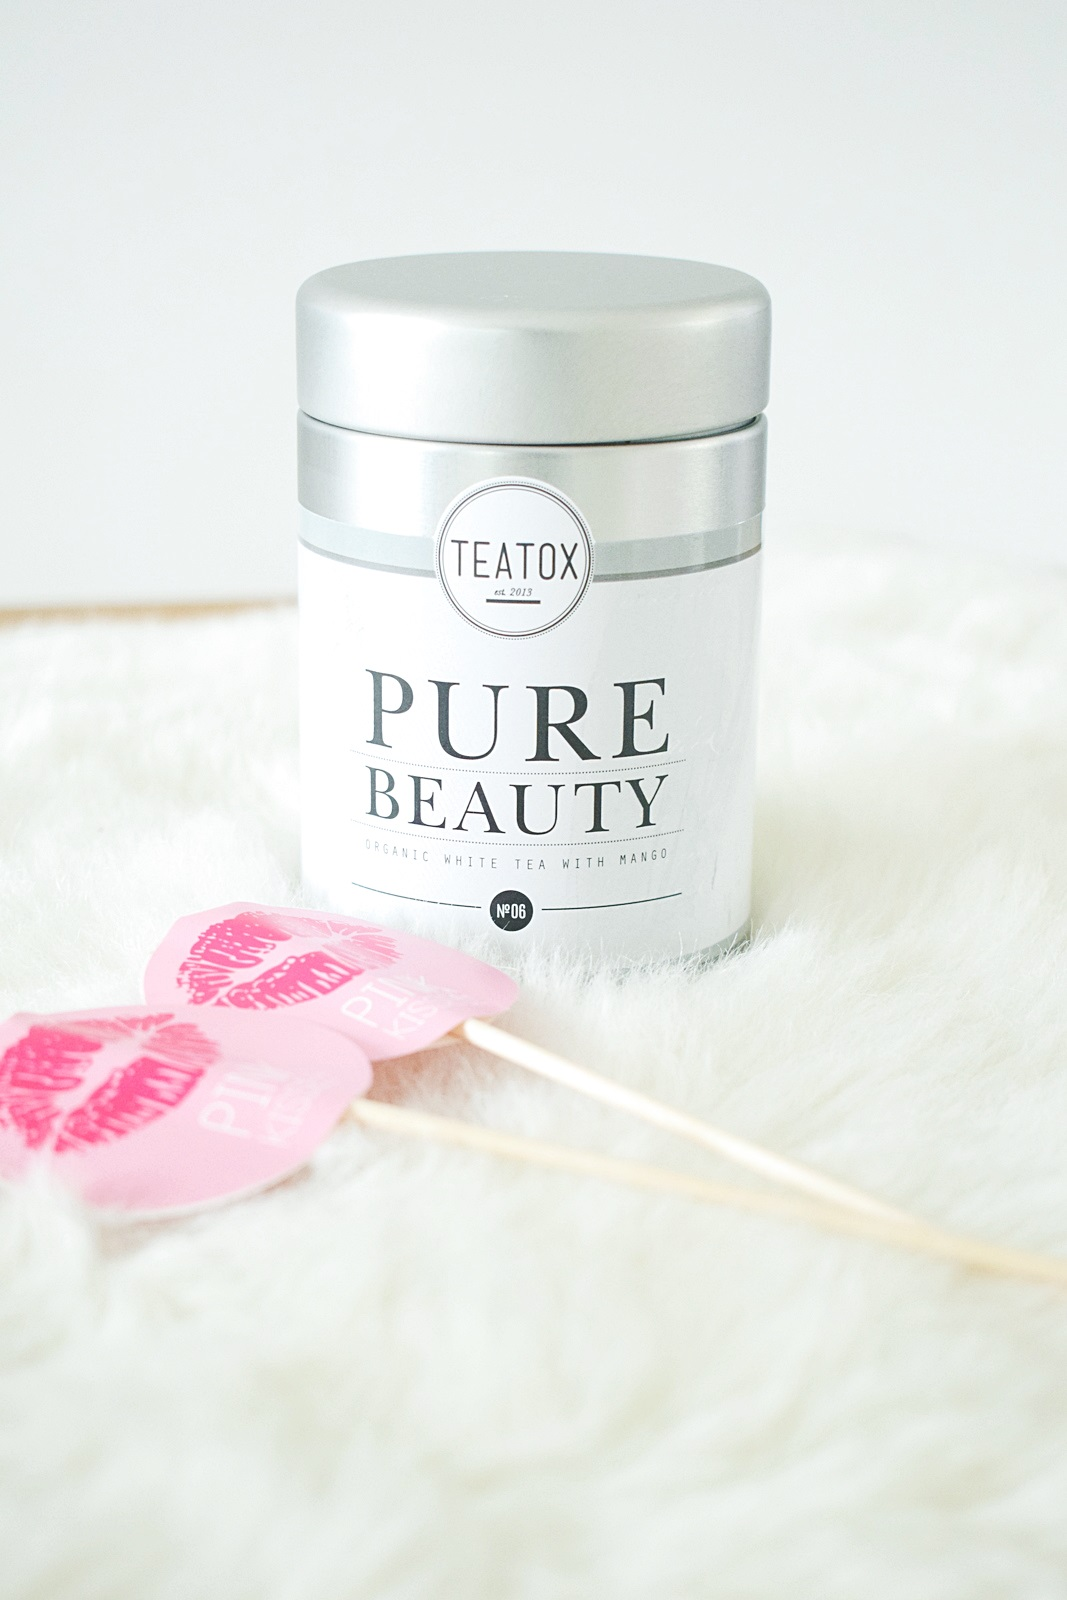 TEATOX Pure Beauty